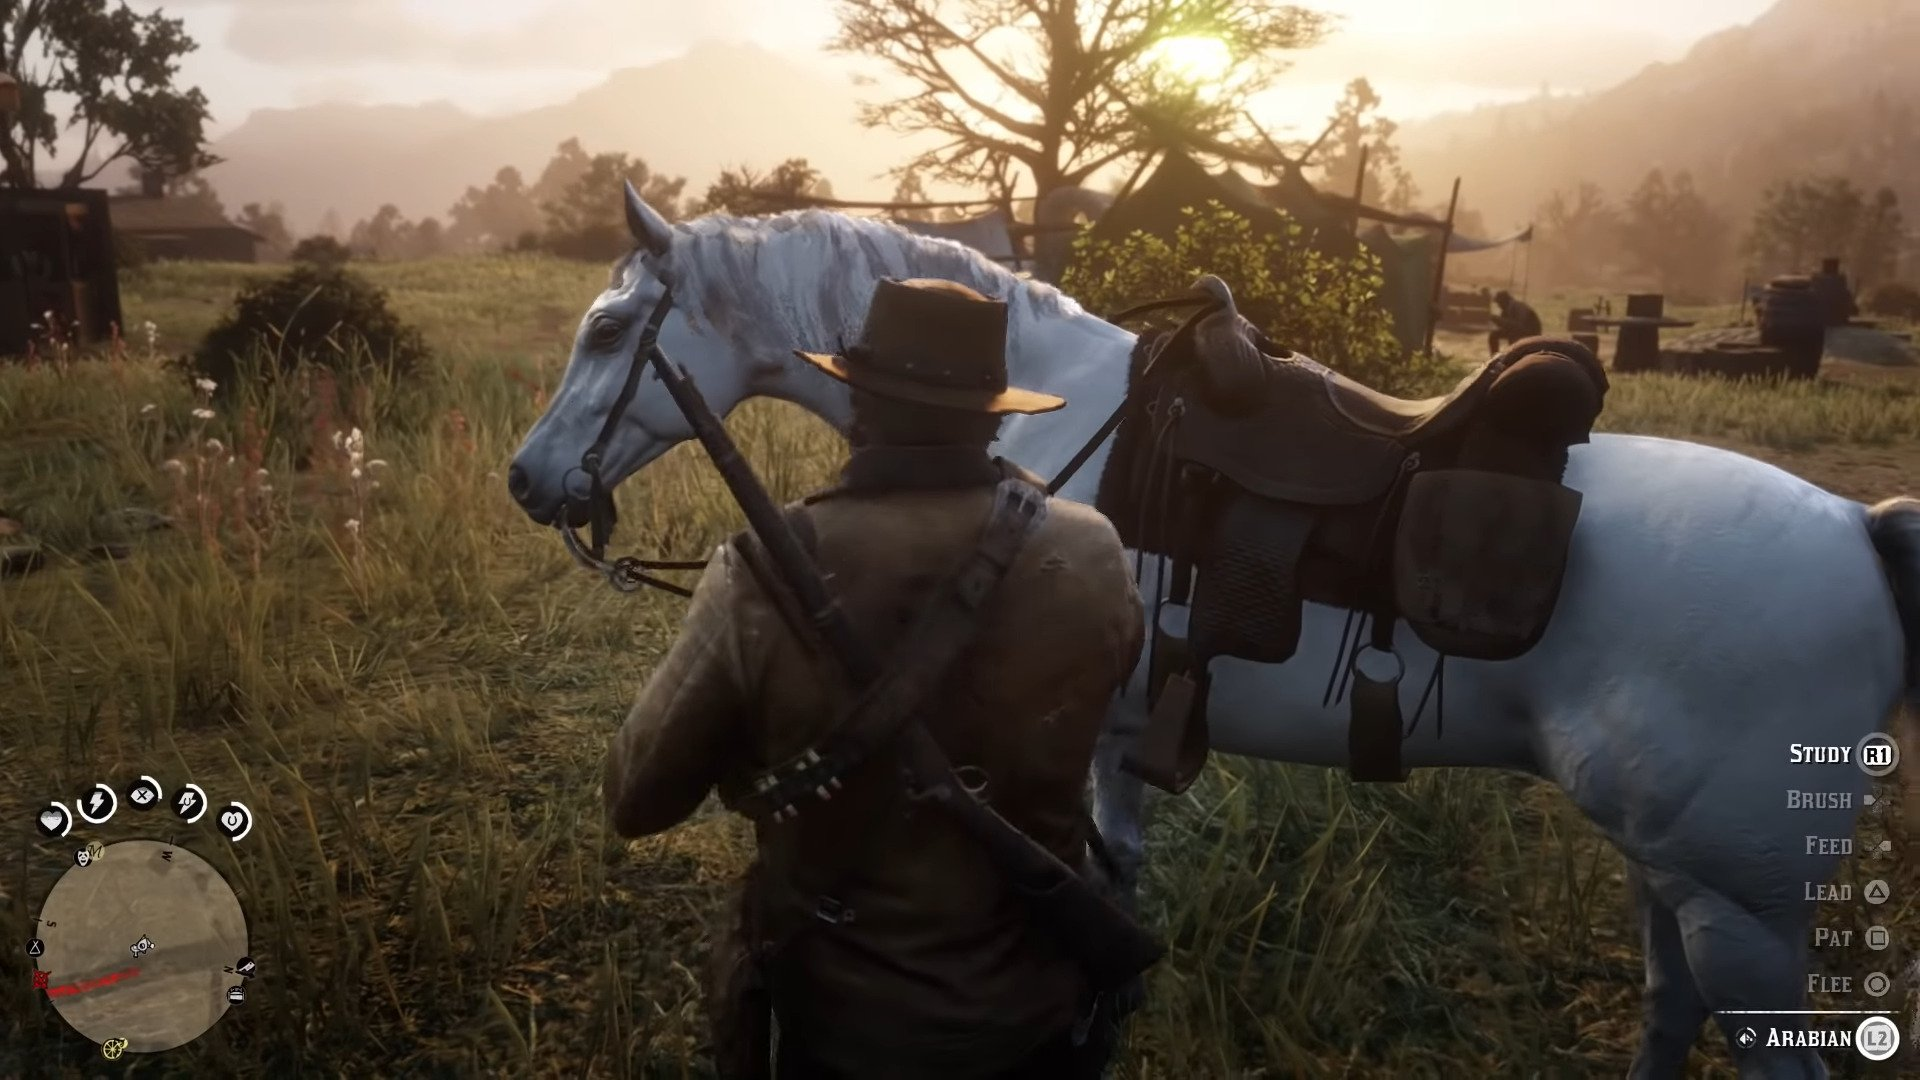 Red Dead Redemption 2: How To Find And Capture The Legendary White Arabian Race Horse